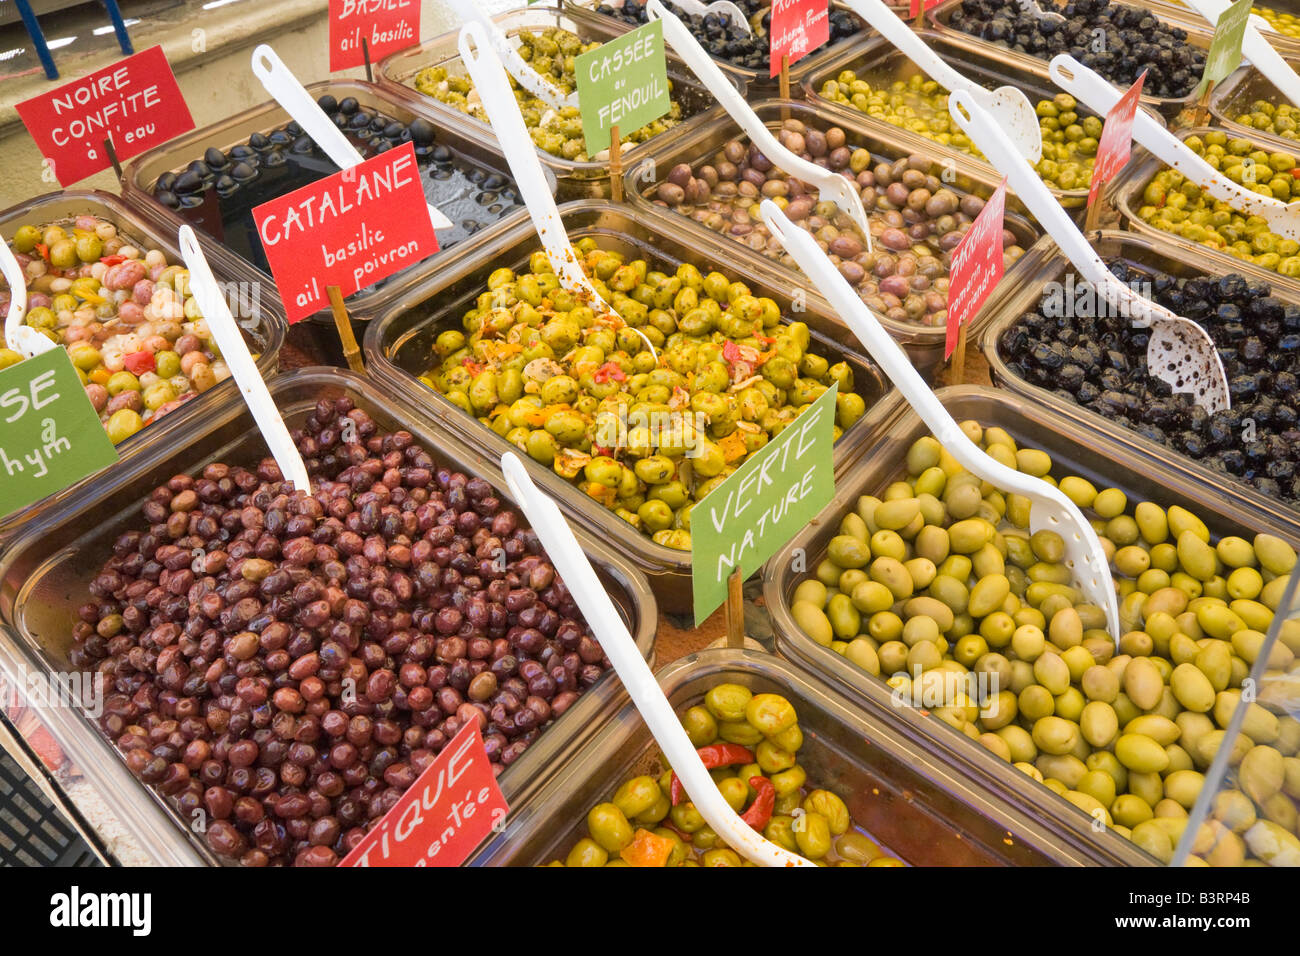 A variety of olives is being offered at a market stall at Céret in Southern France - Stock Image